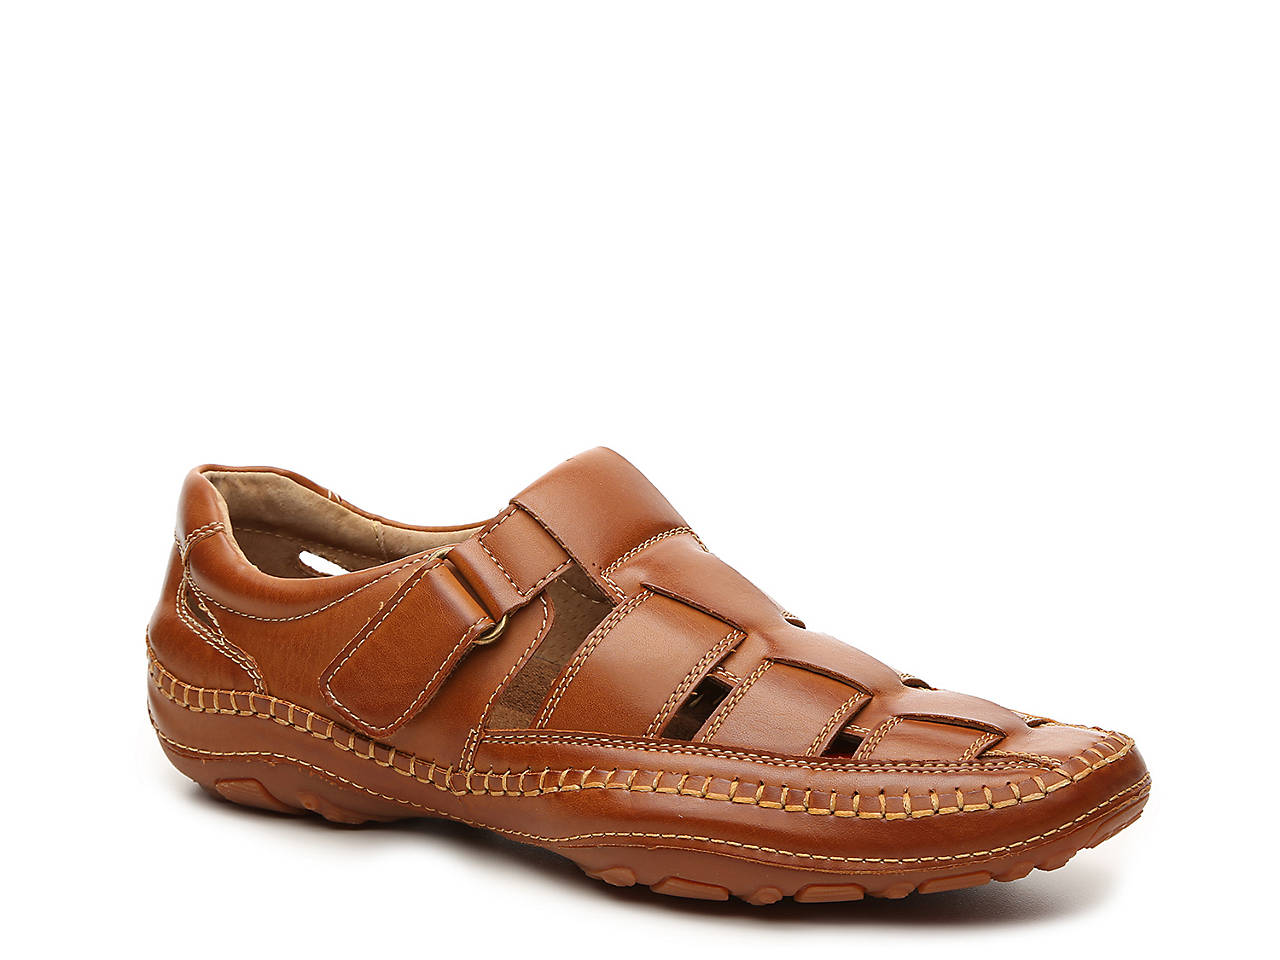 Men's GBX Sentaur Sandals clearance visit saekaJWEB